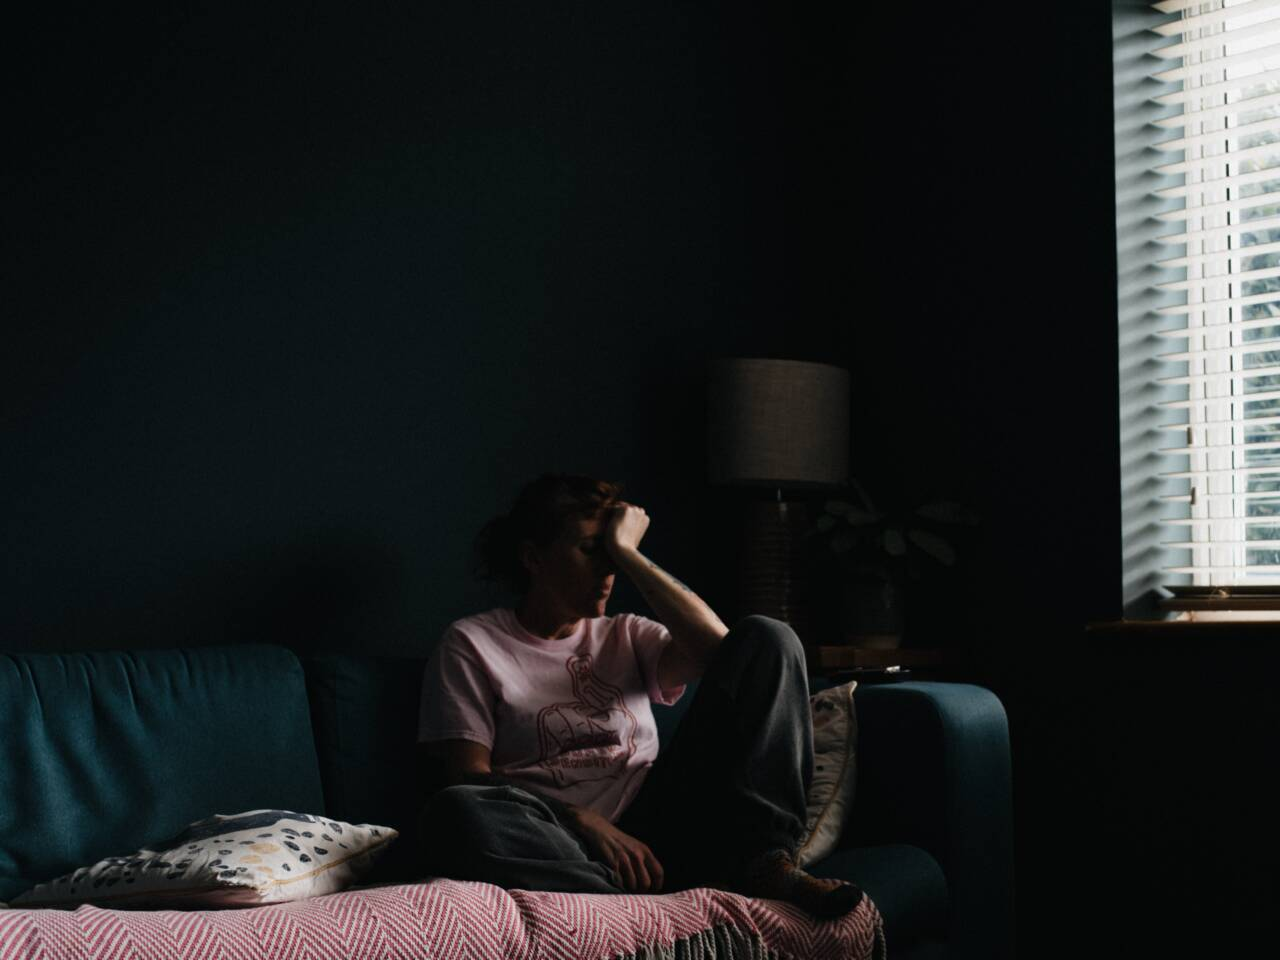 upset woman sitting on a couch